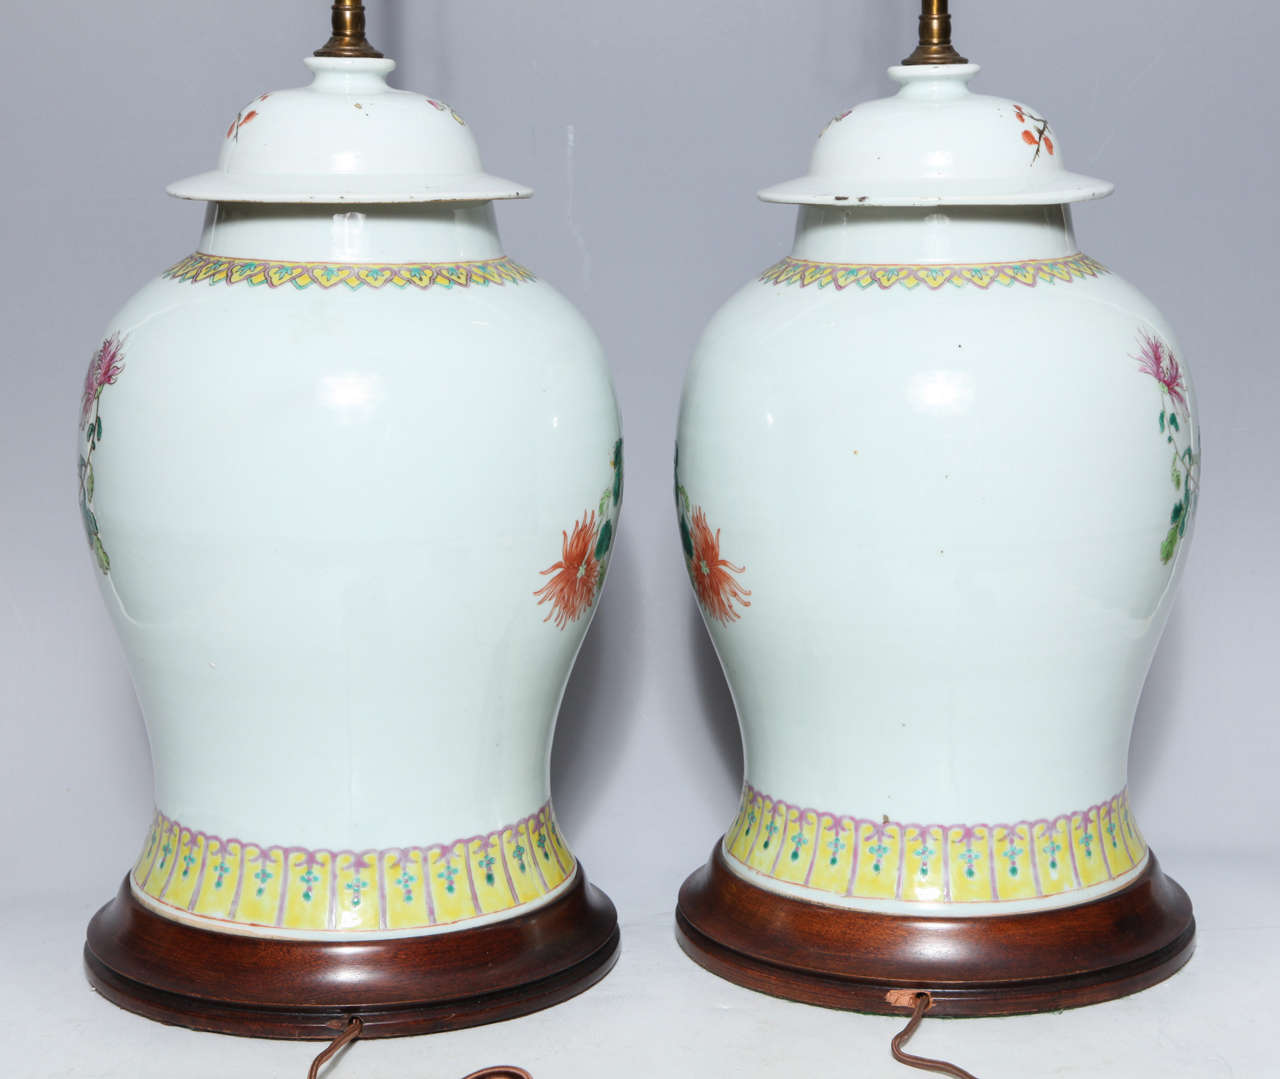 Pair of 19th Century Chinese Porcelain Ginger Jars Converted into Table Lamps For Sale 4